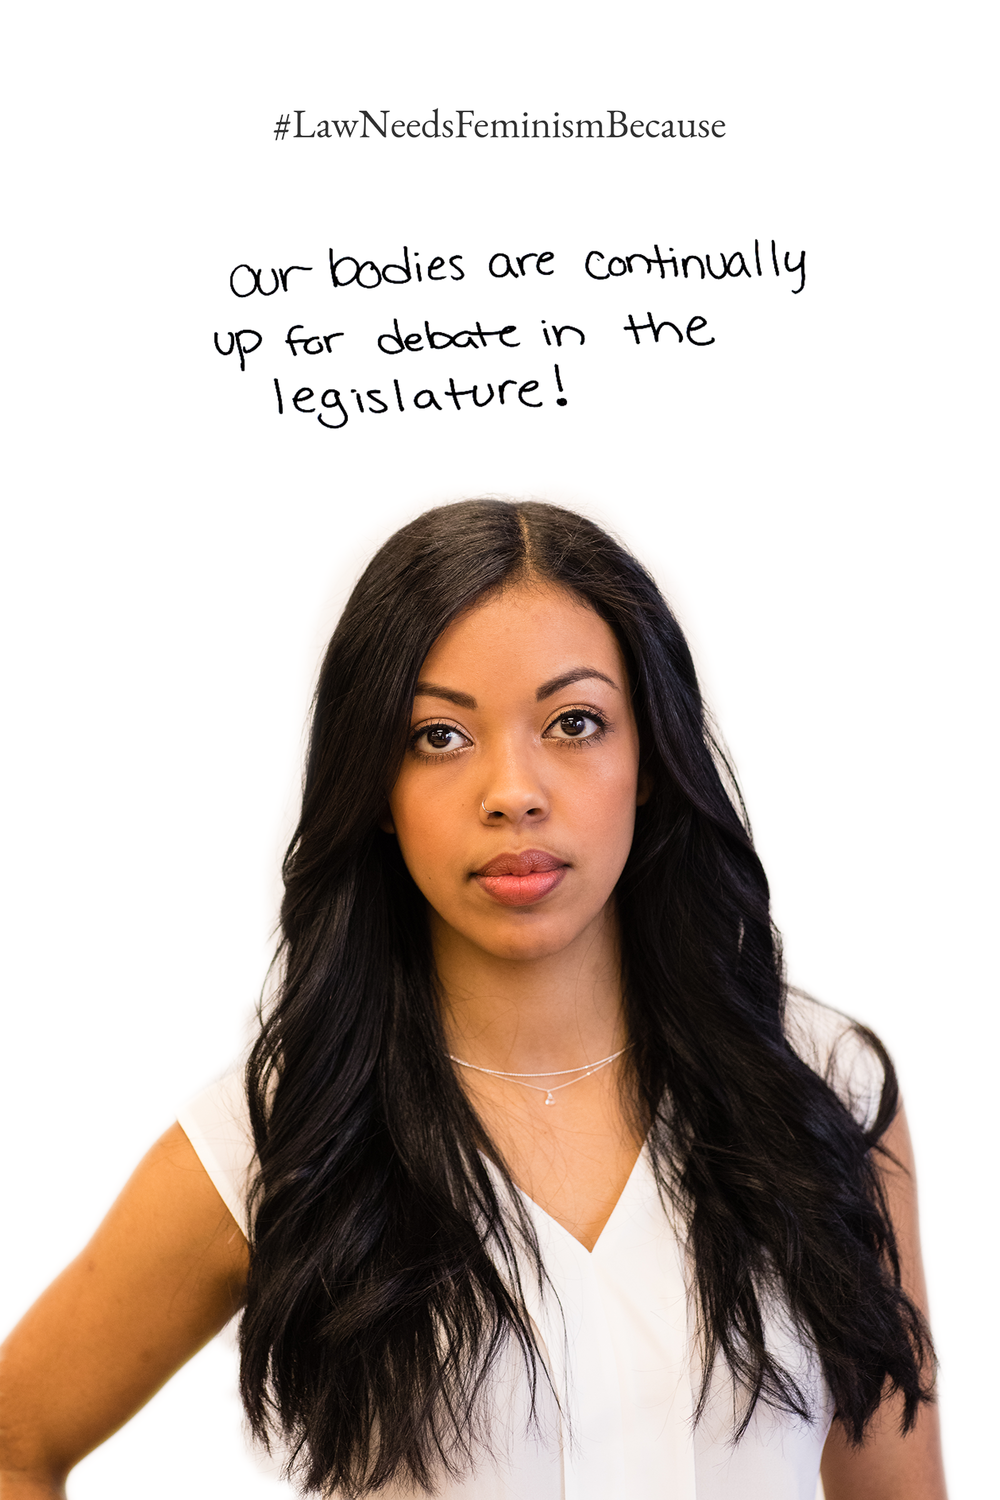 Law Needs Feminism Because  our bodies are continually up for debate in the legislature!